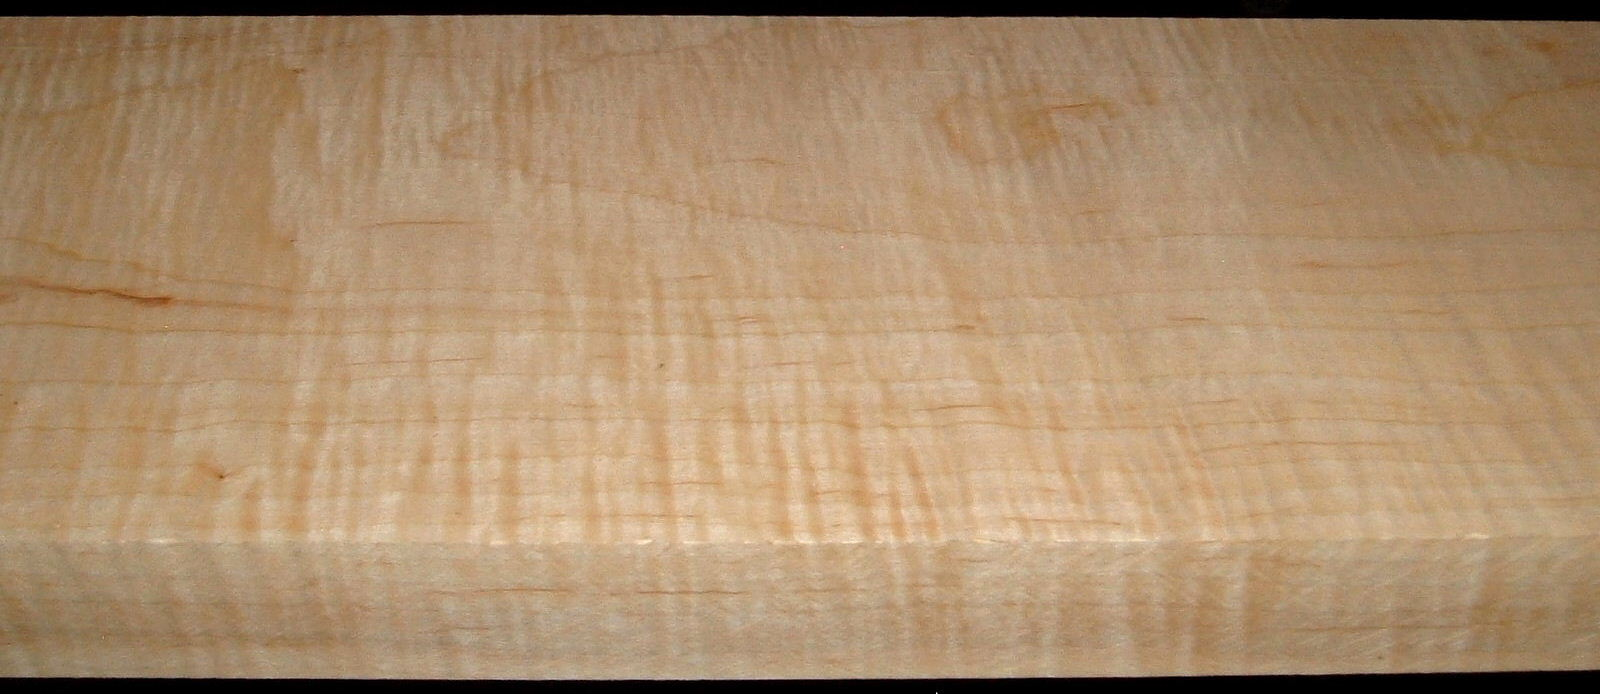 M2007-593, +1-1/16x8-3/4x58, Mineral Streaked Curly Maple